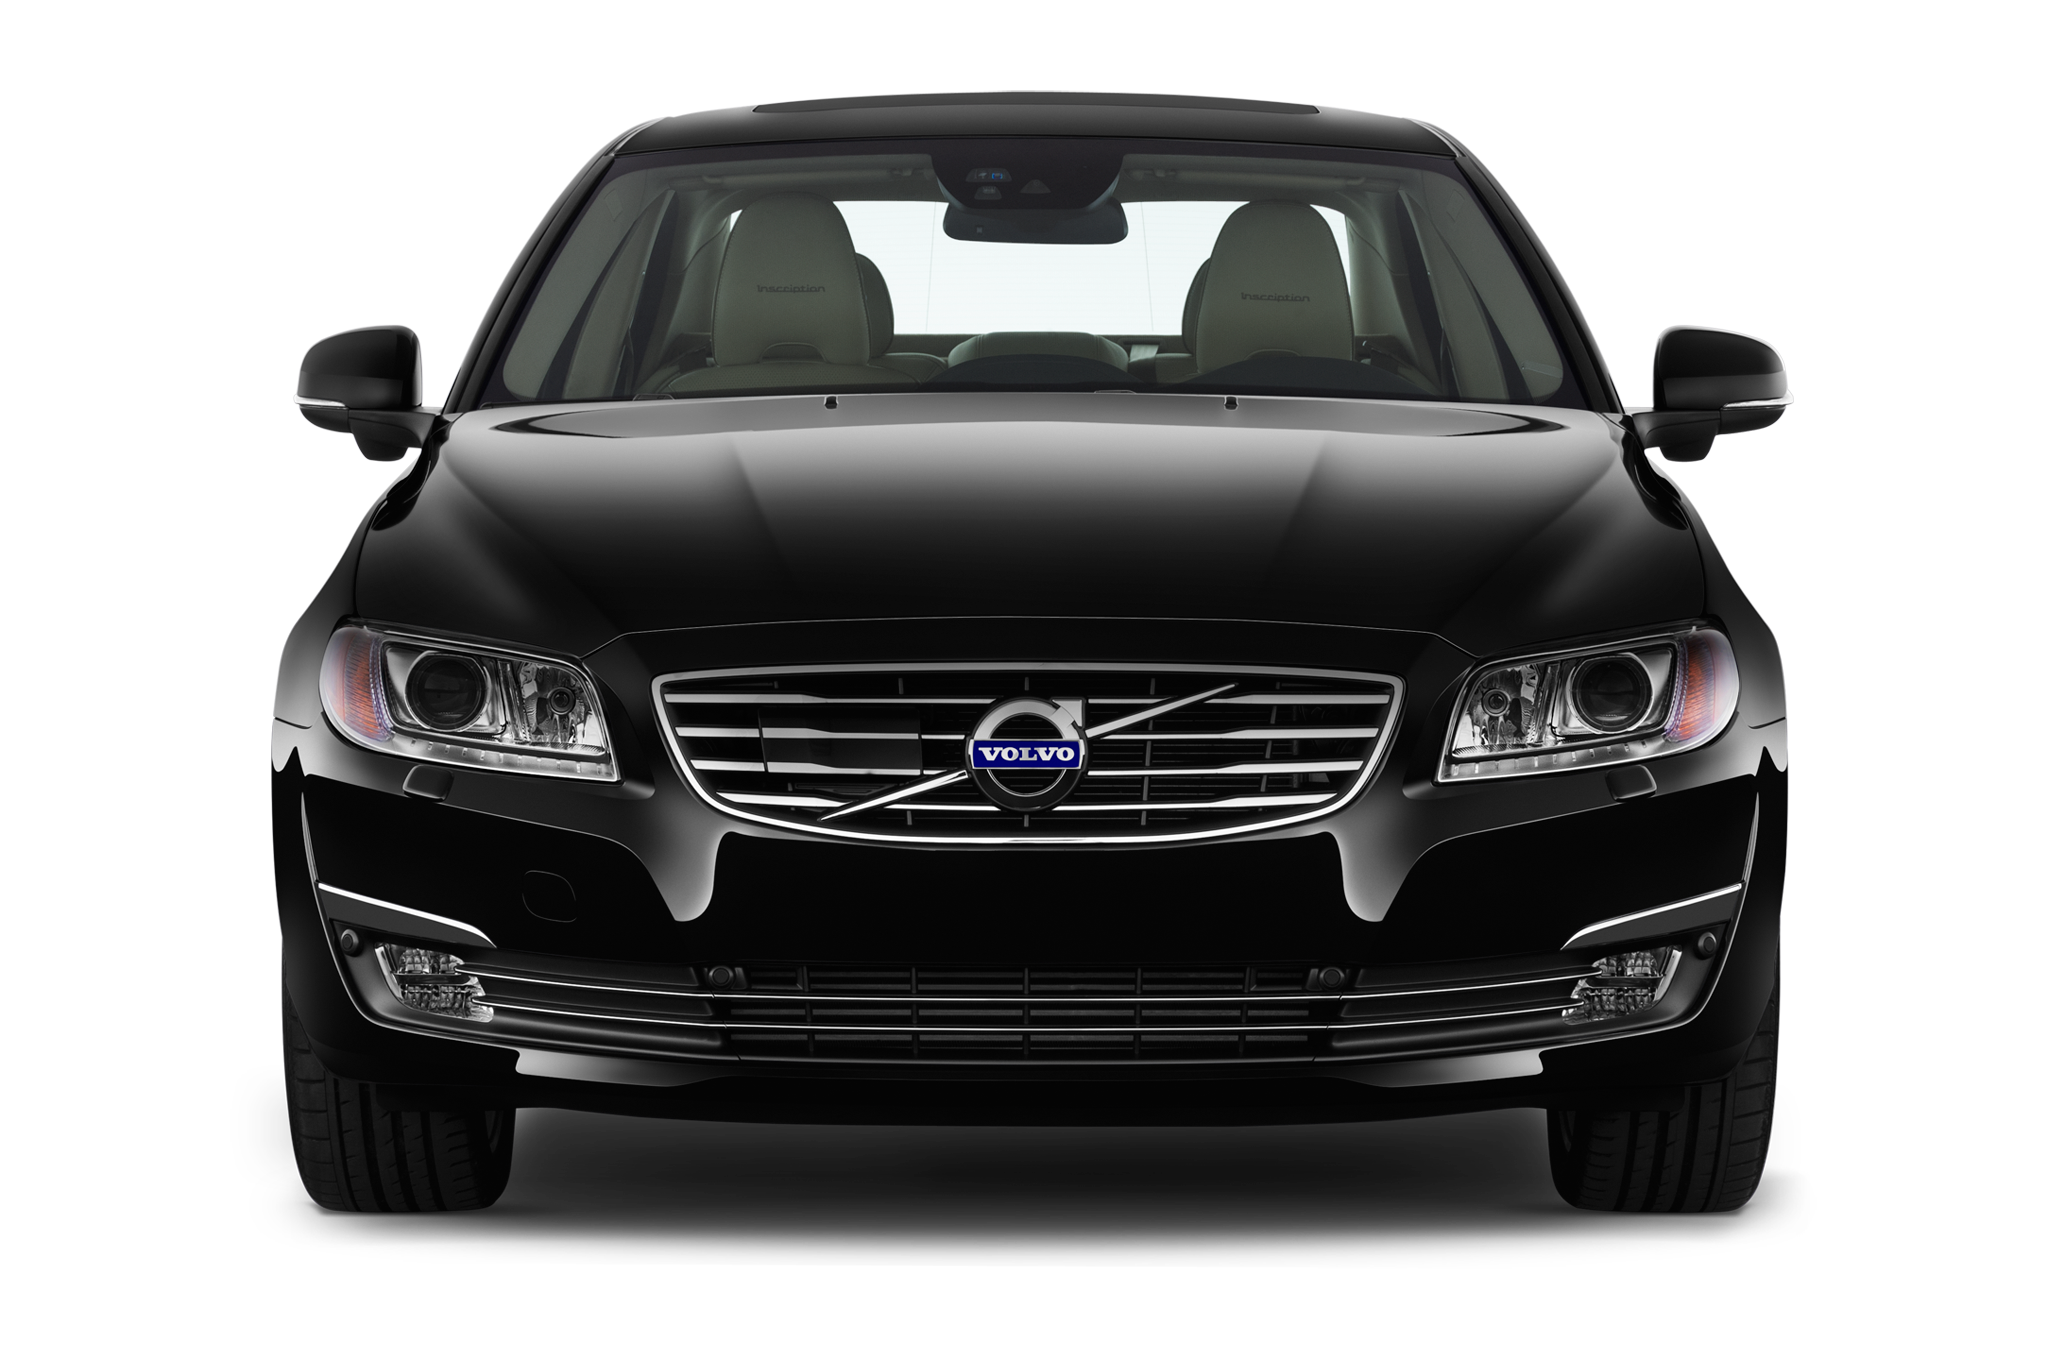 Listen To The Surprising V 8 Growl Of This Volvo S80